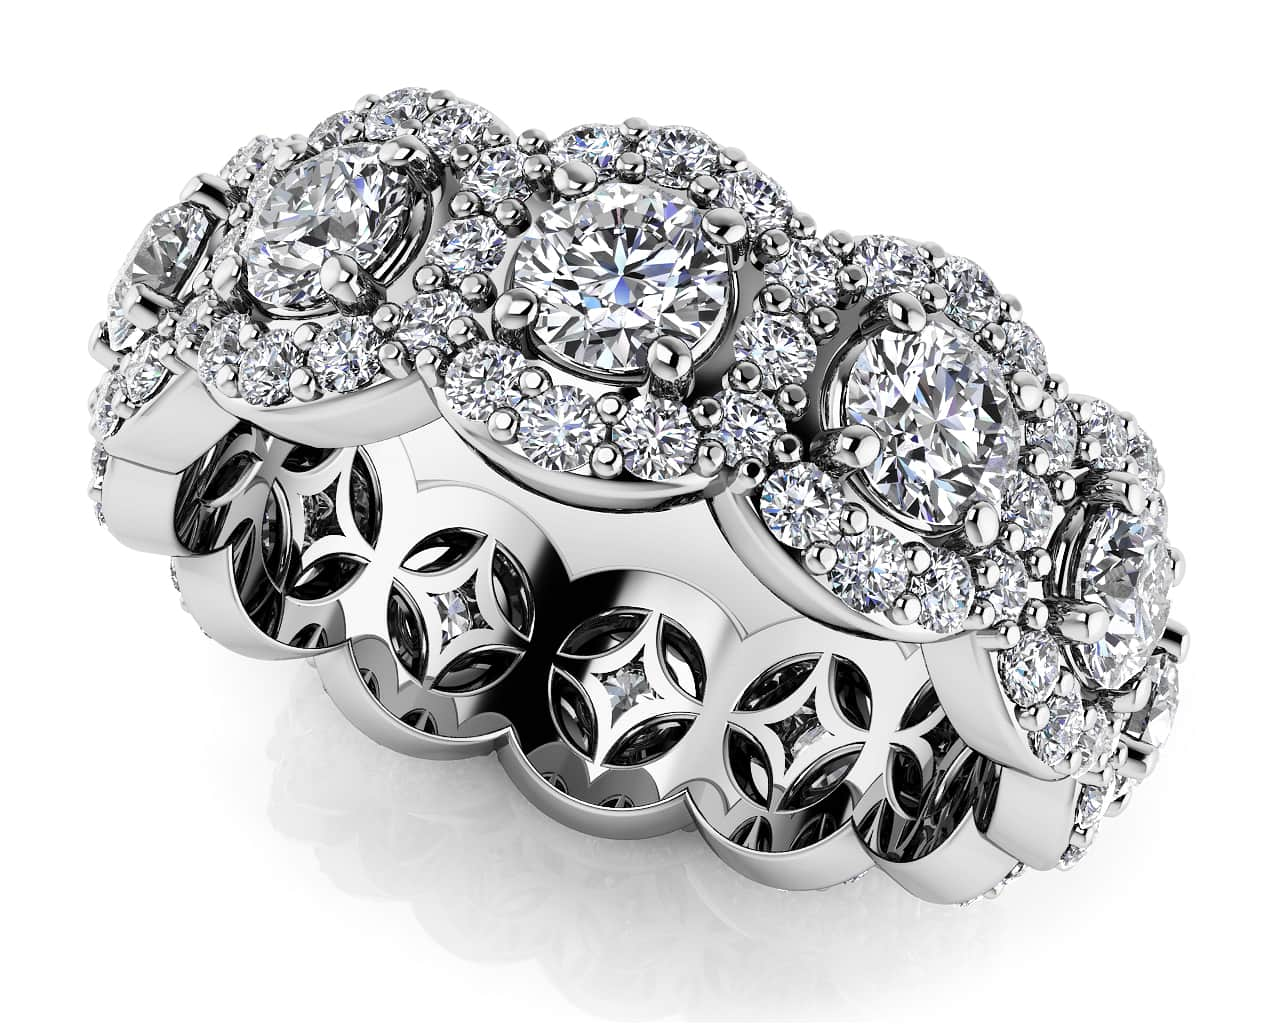 Anjolee Diamond Ring Review